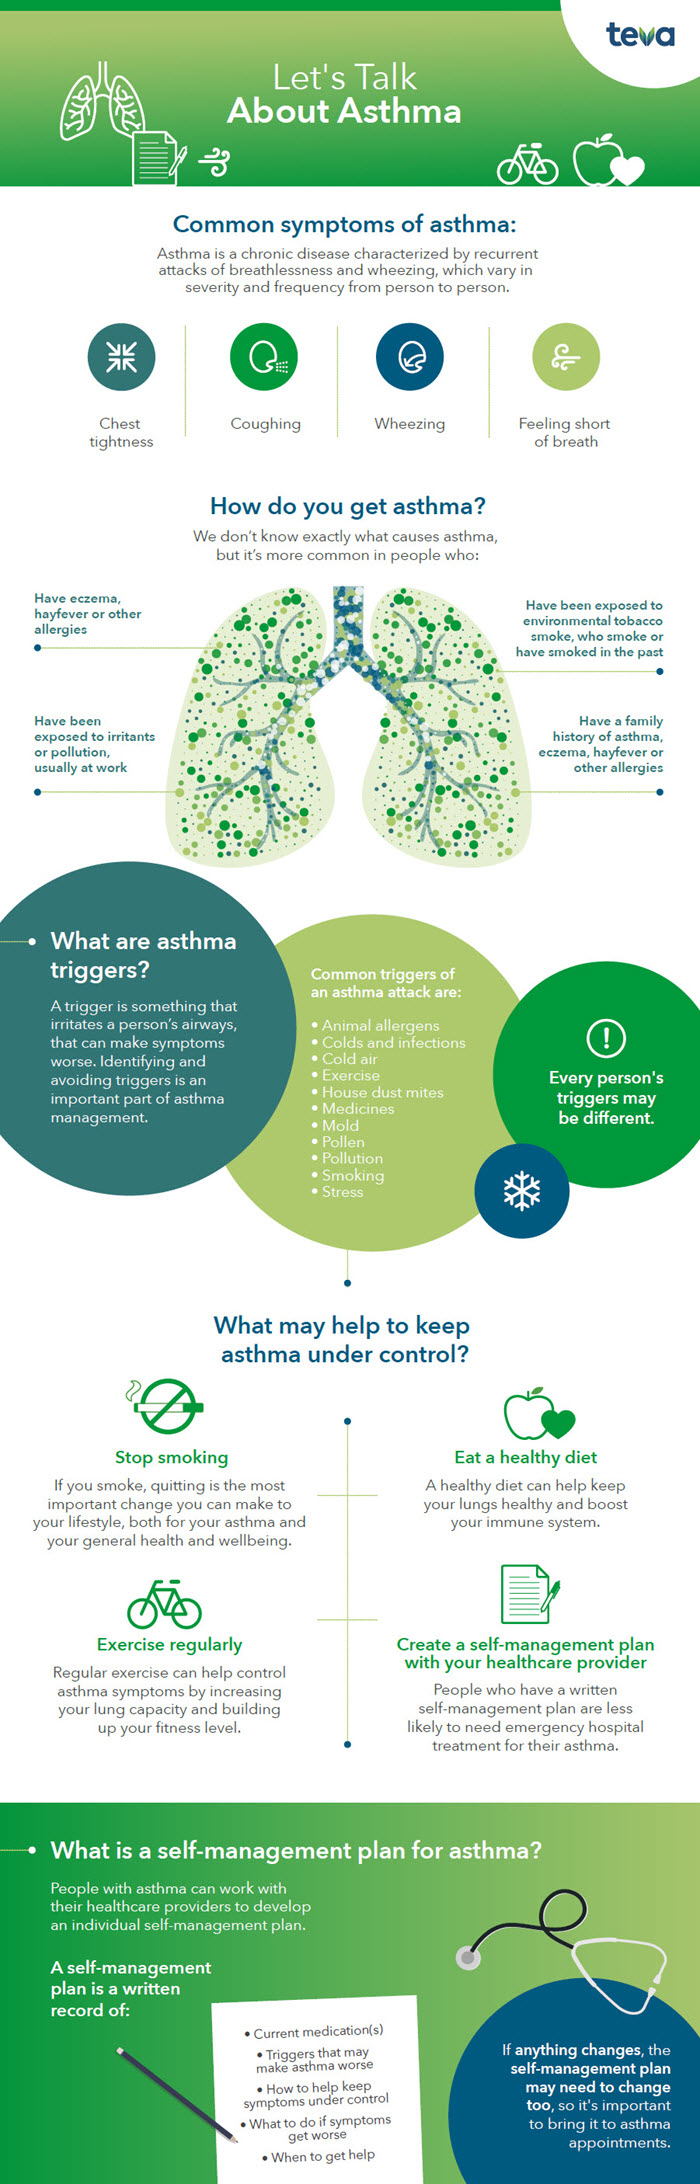 Let's talk about asthma infogrpahic